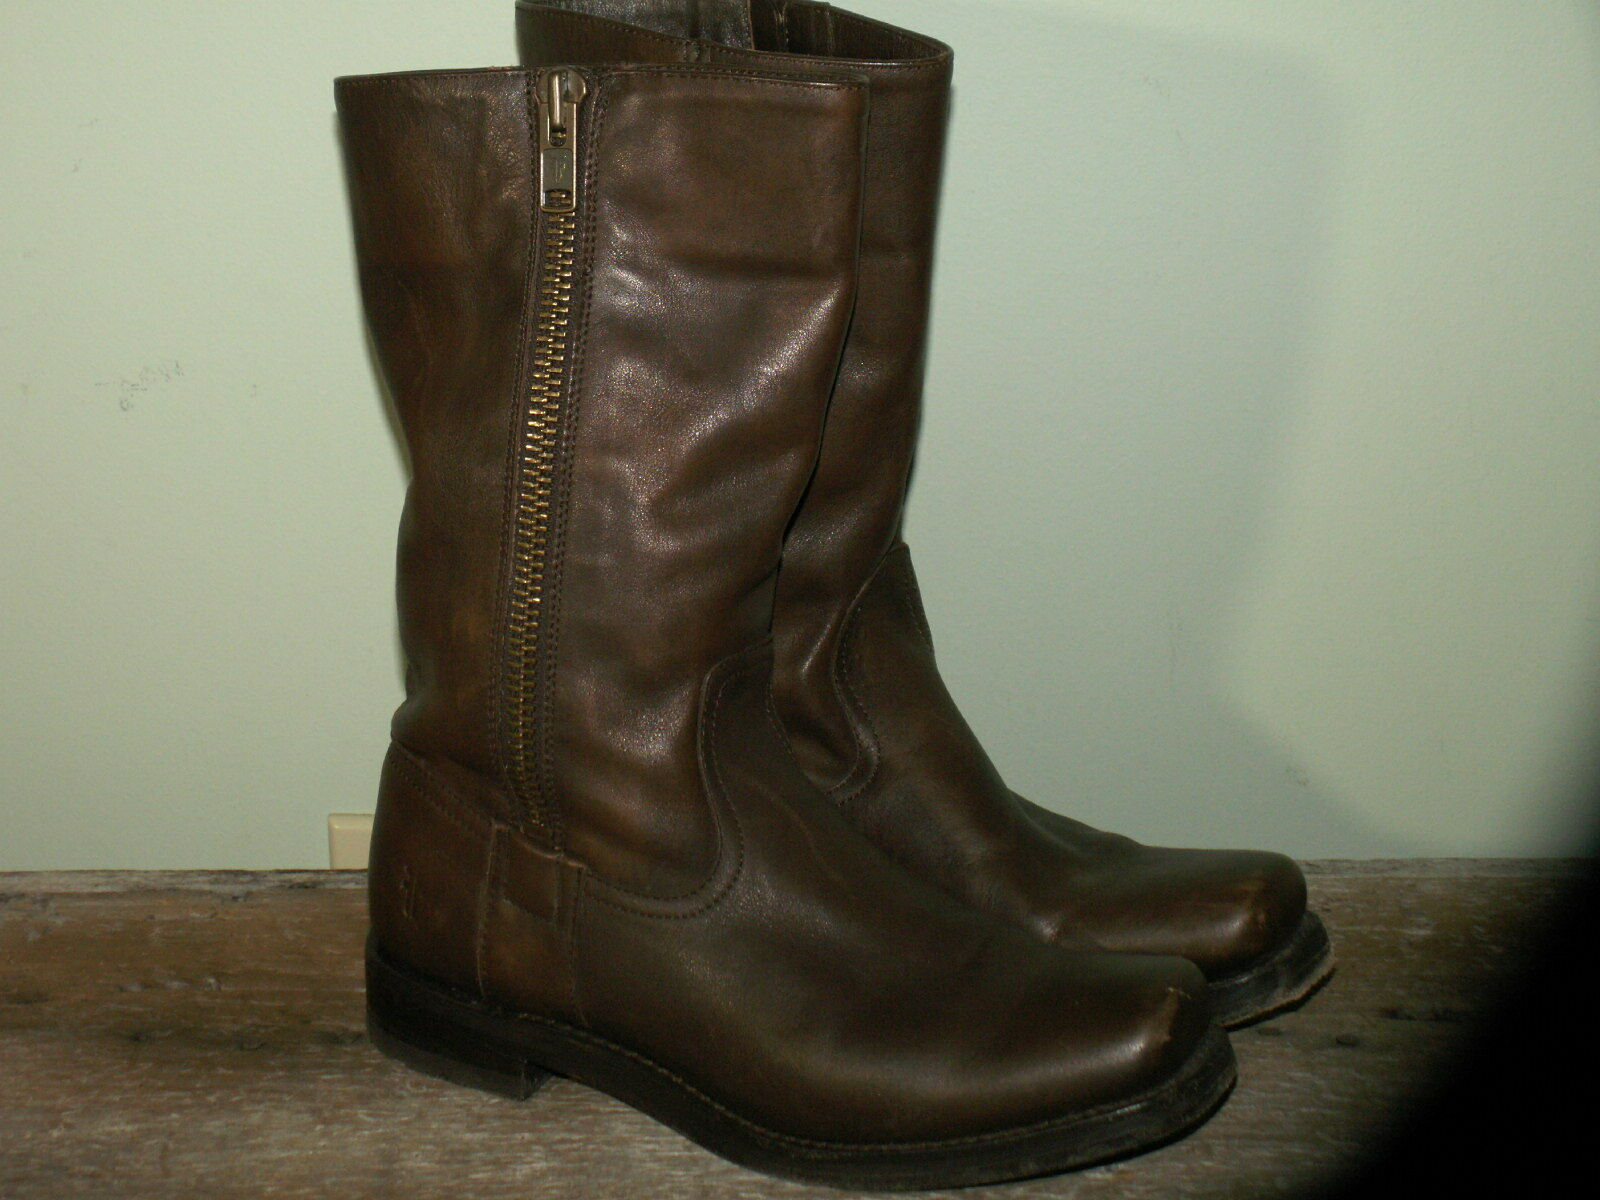 Frye Brown Leather Motorcycle Square Toe Outside Zipper Boots Women's Size 8.5B